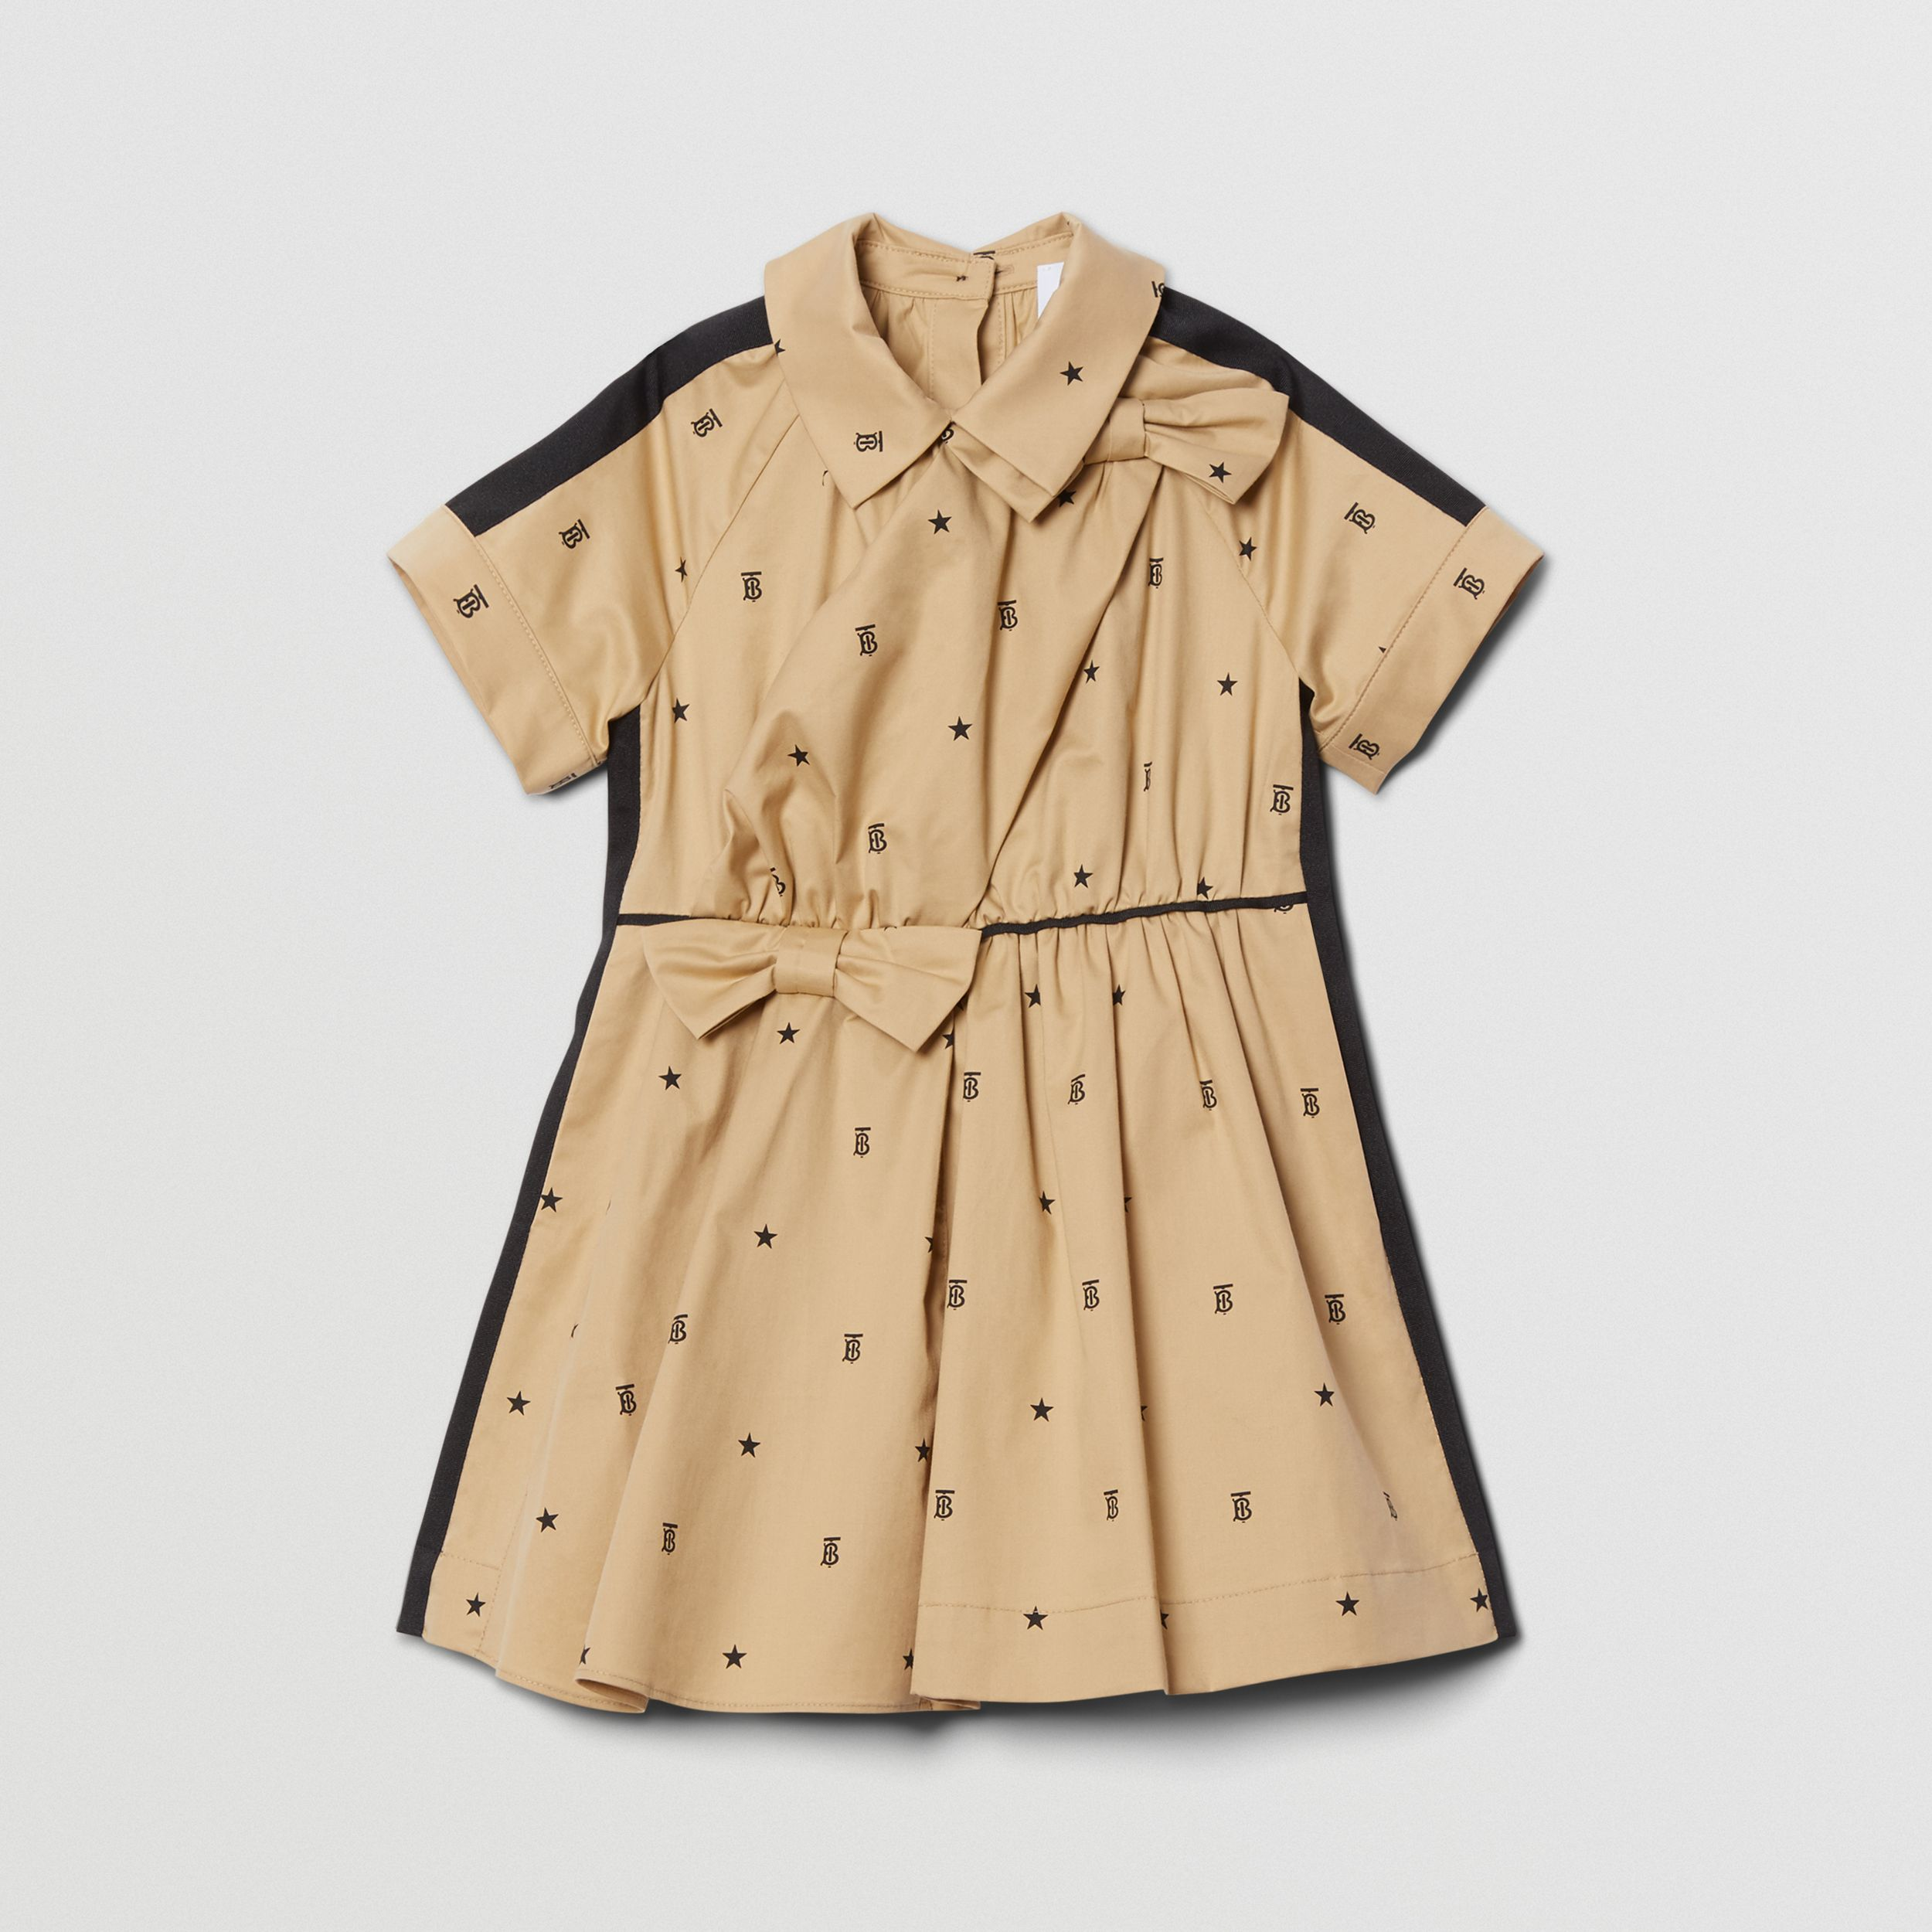 Star and Monogram Motif Stretch Cotton Dress in Sand - Children | Burberry - 1